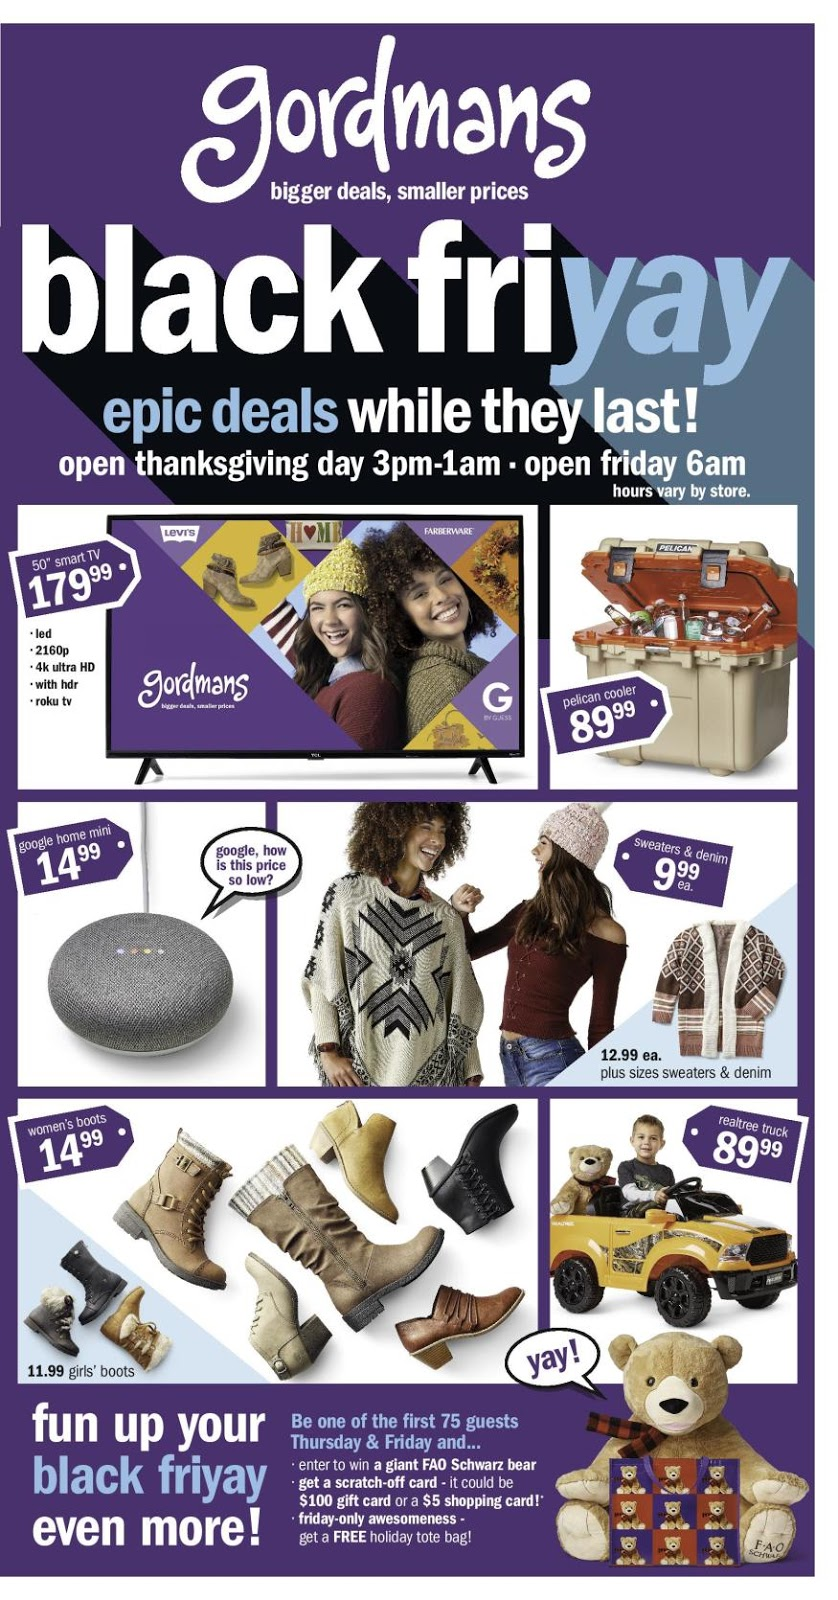 Checkout Gordmans Black Friday 2019